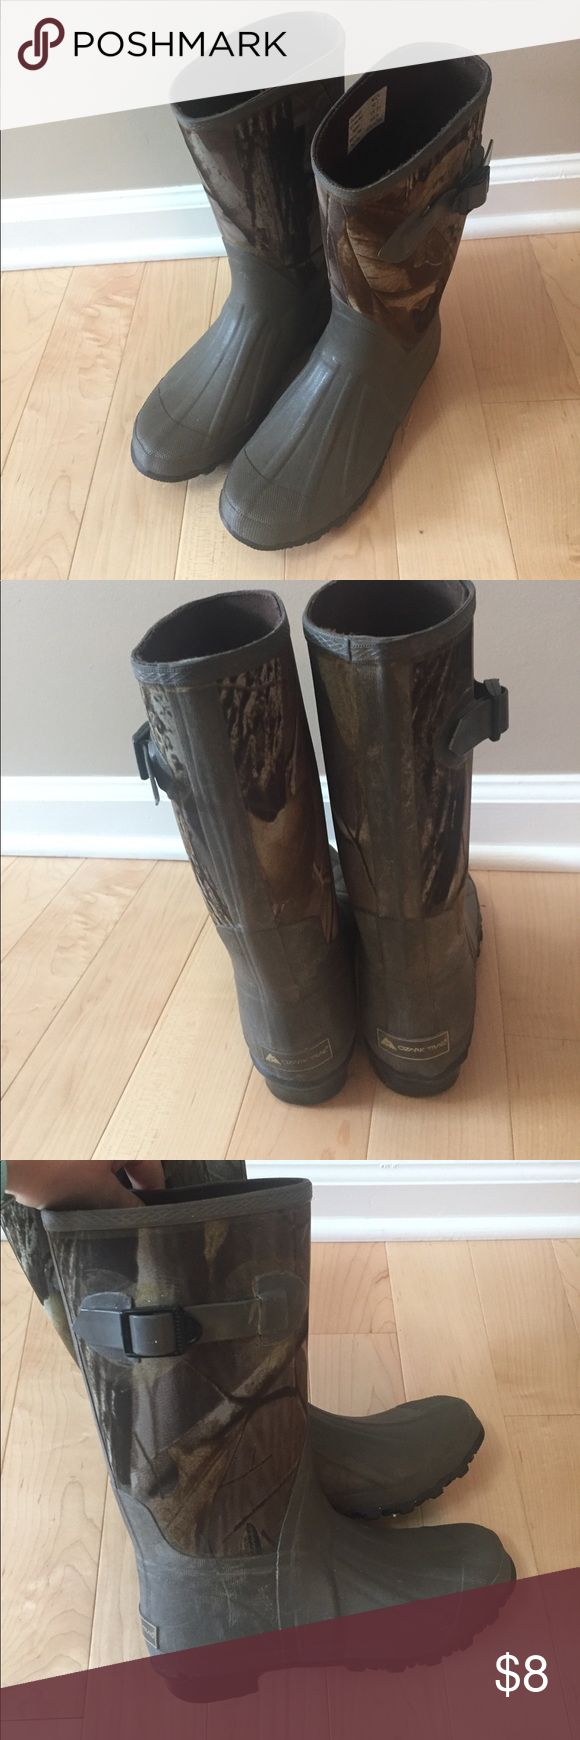 Camo Rain/Mud boots Camo rain/mud boots. Tag says size 5 but fits more  like a 7.5 Shoes Winter & Rain Boots